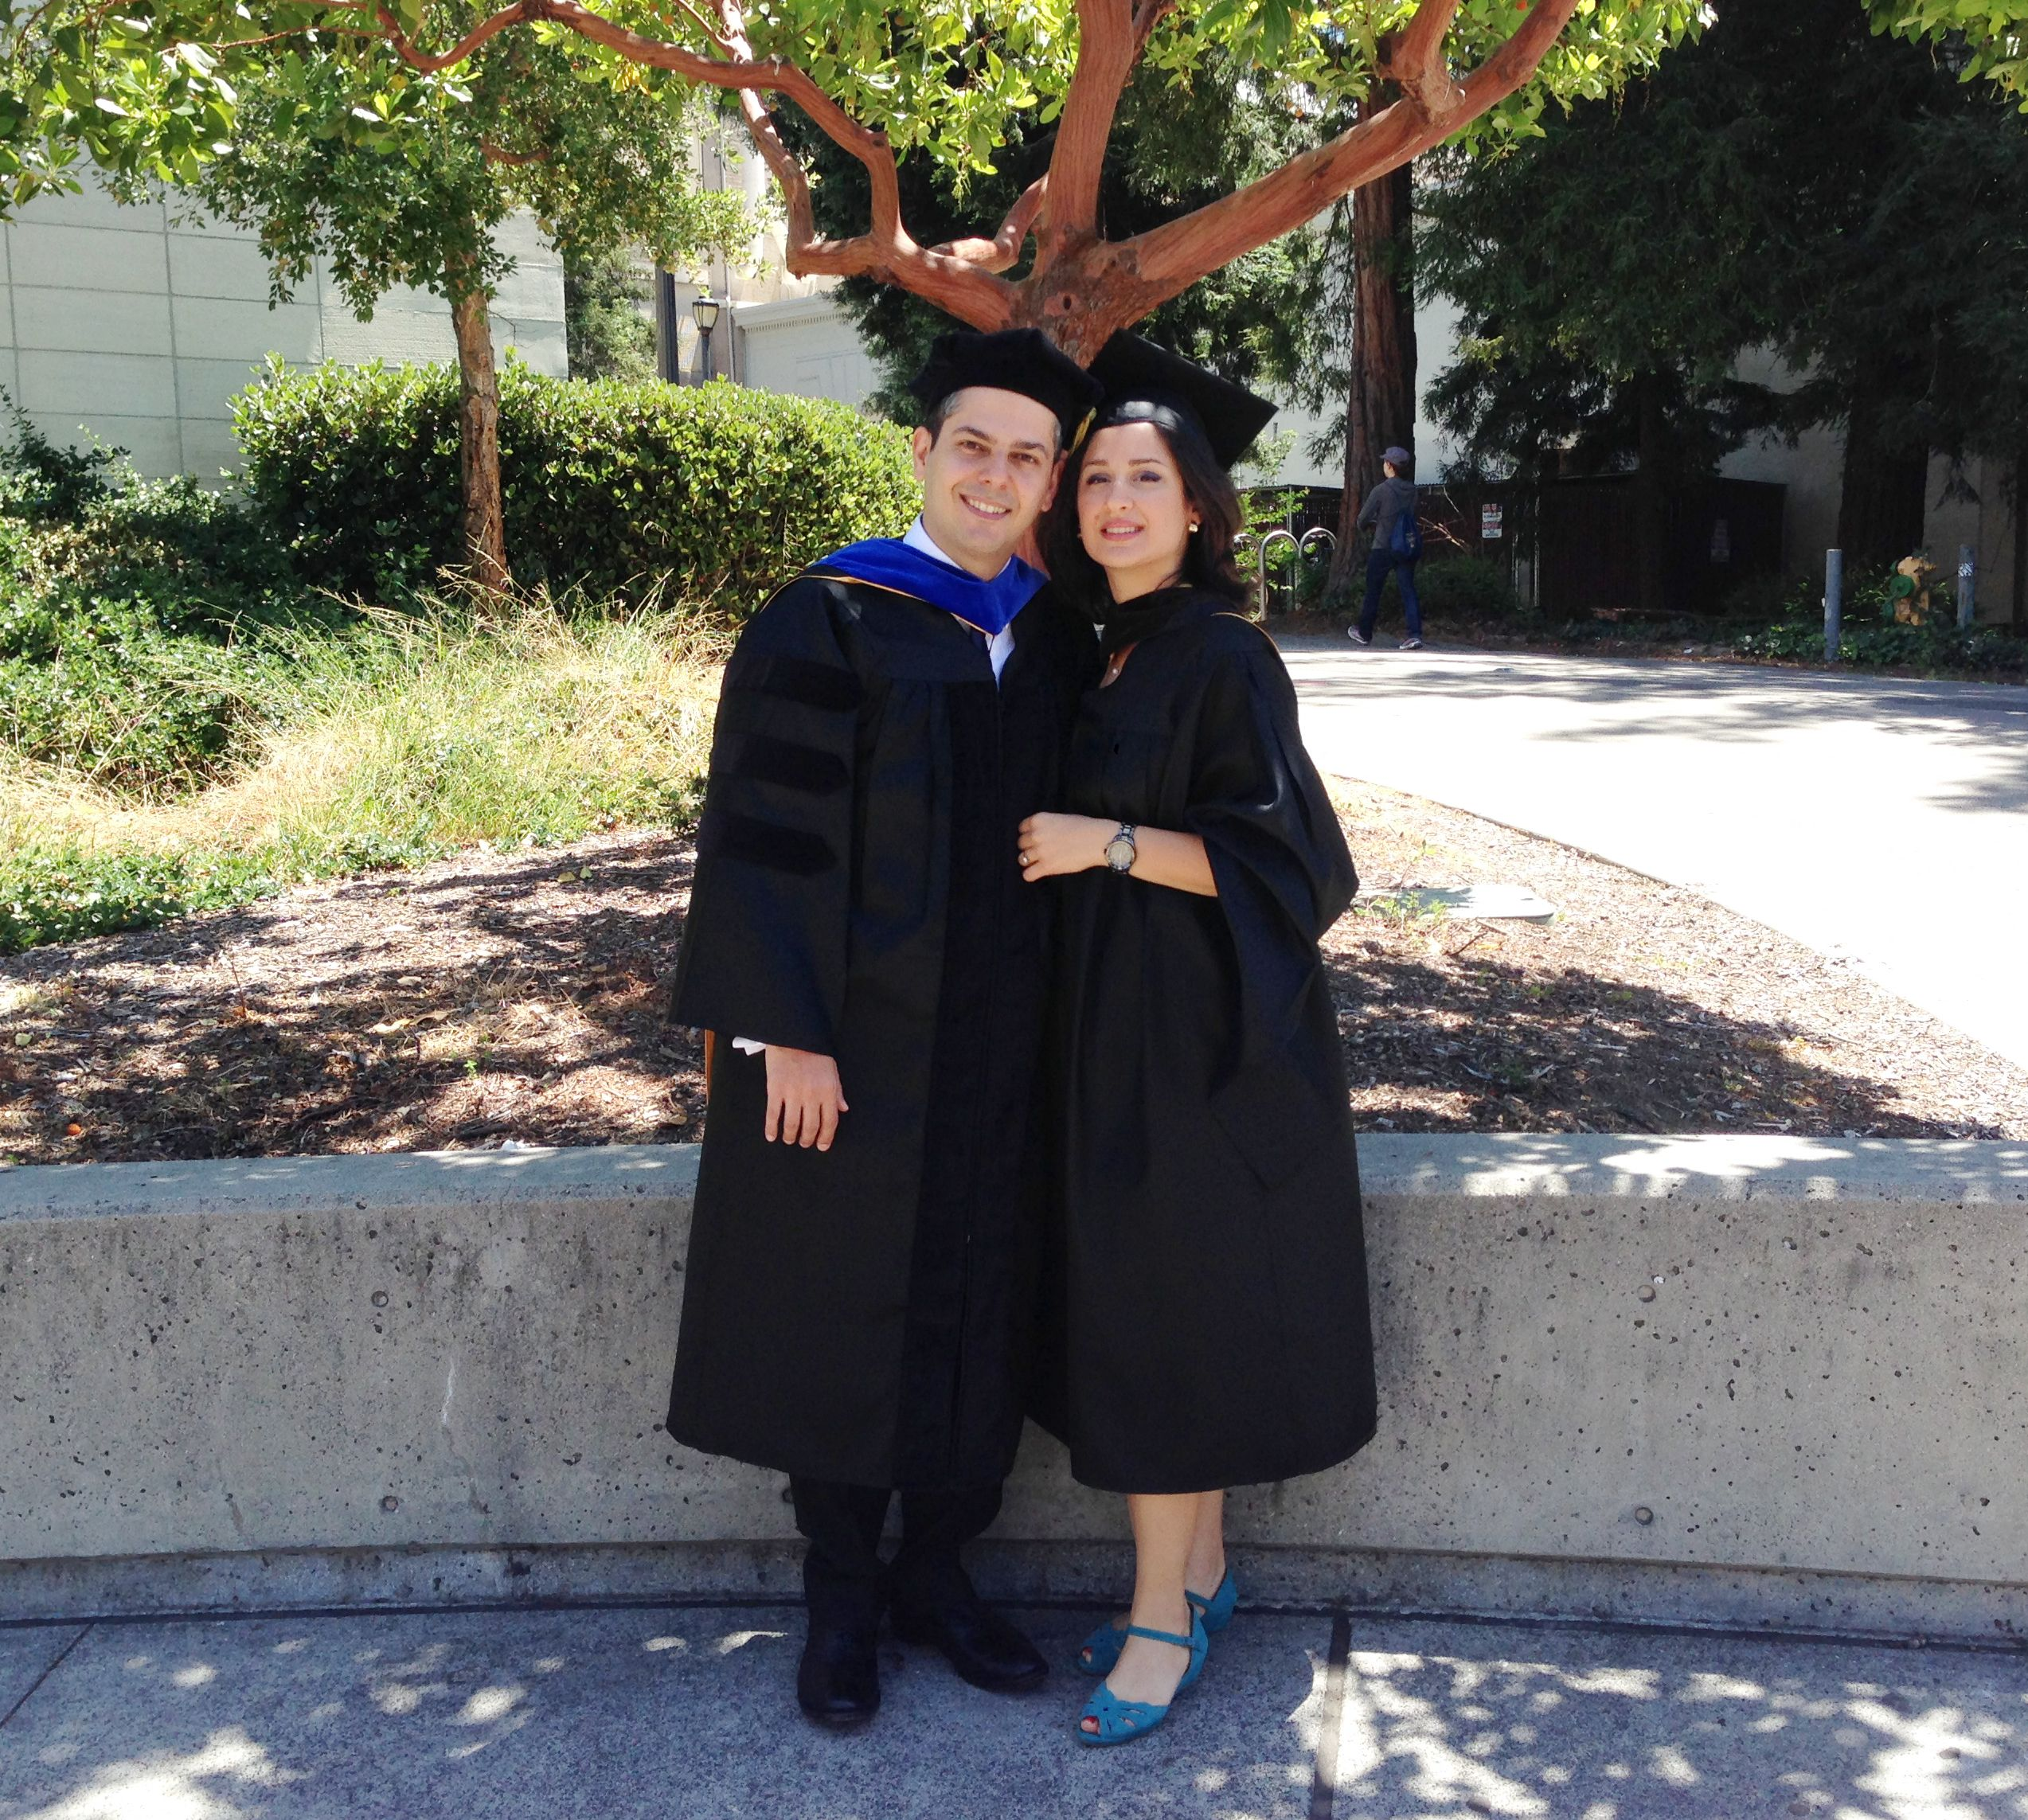 Niknaz Aftahi with her husband Fares at her graduation from UC Berkeley in 2014. (Niknaz Aftahi)